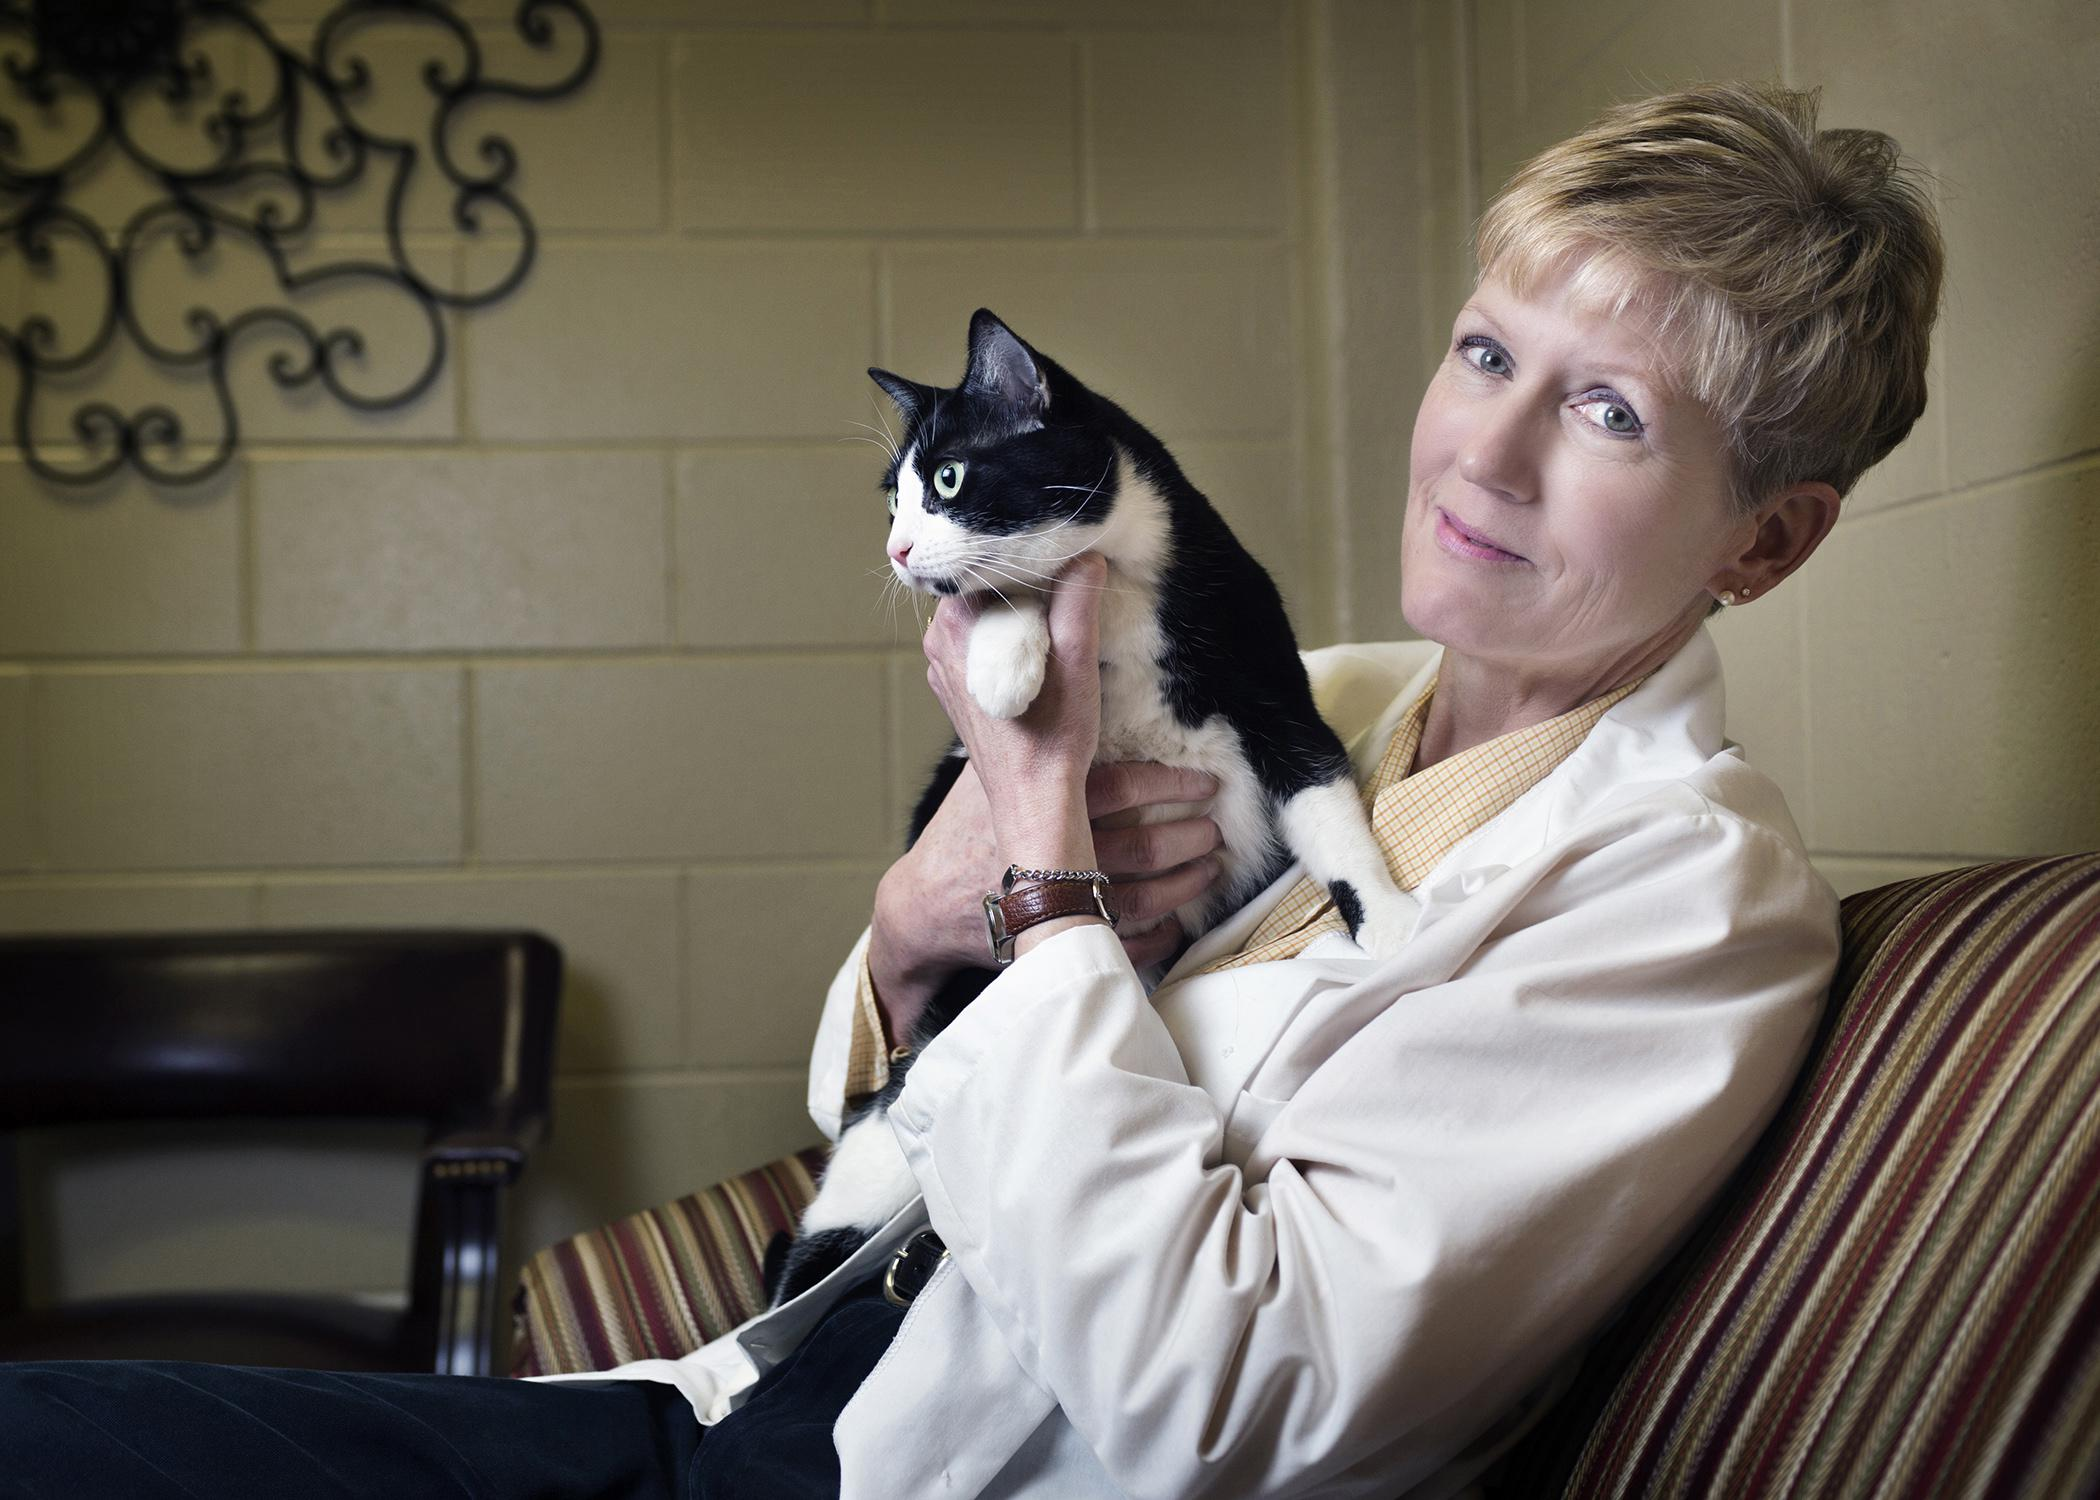 Dr. Sharon Fooshee Grace, a clinical professor in Mississippi State University's College of Veterinary Medicine, has a passion to protect the vulnerable. She works with a domestic violence shelter to provide care for victims' pets, many of which may also need protection and medical care. (Photo by MSU Public Affairs/Megan Bean)